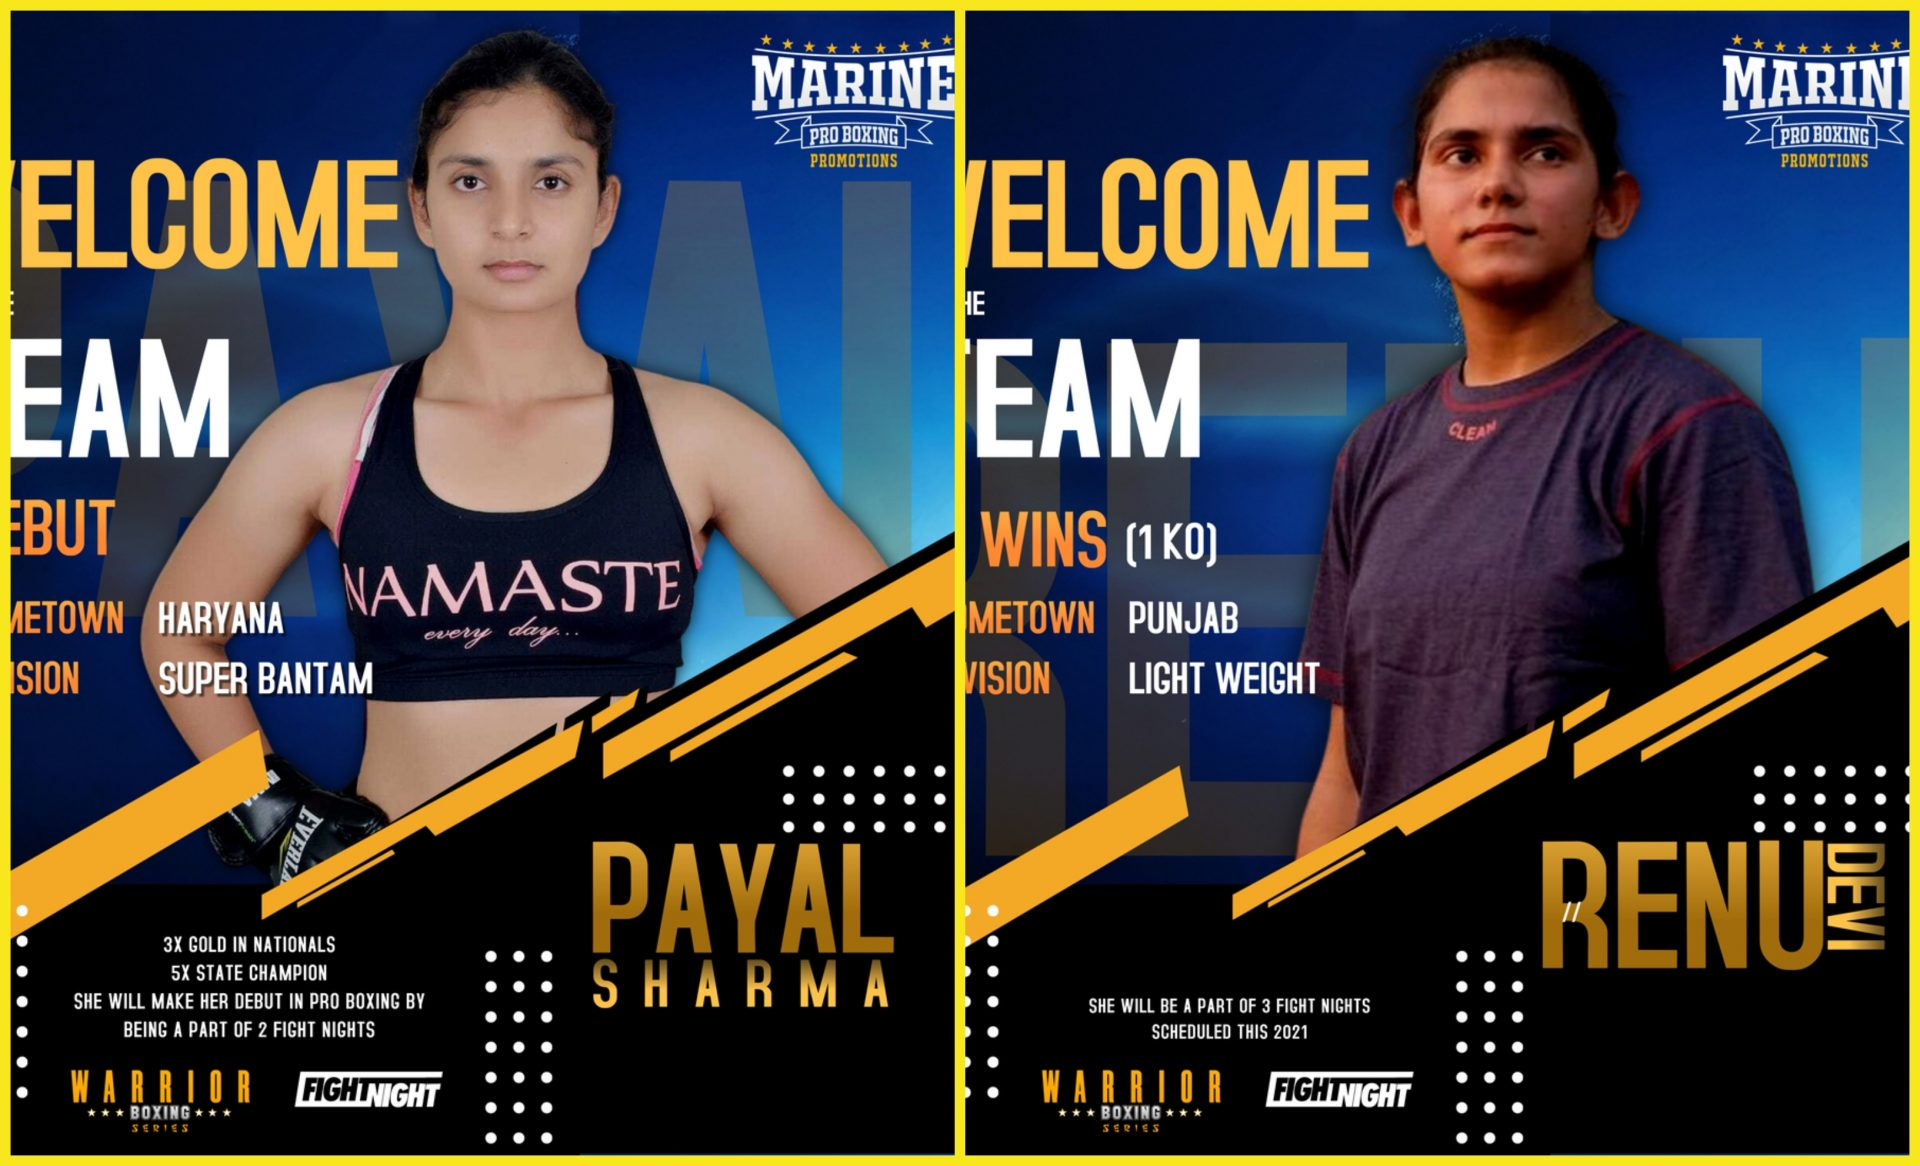 Female boxing stars Renu Devi and Payal Sharma sign with Marine Pro Boxing Promotion - Renu